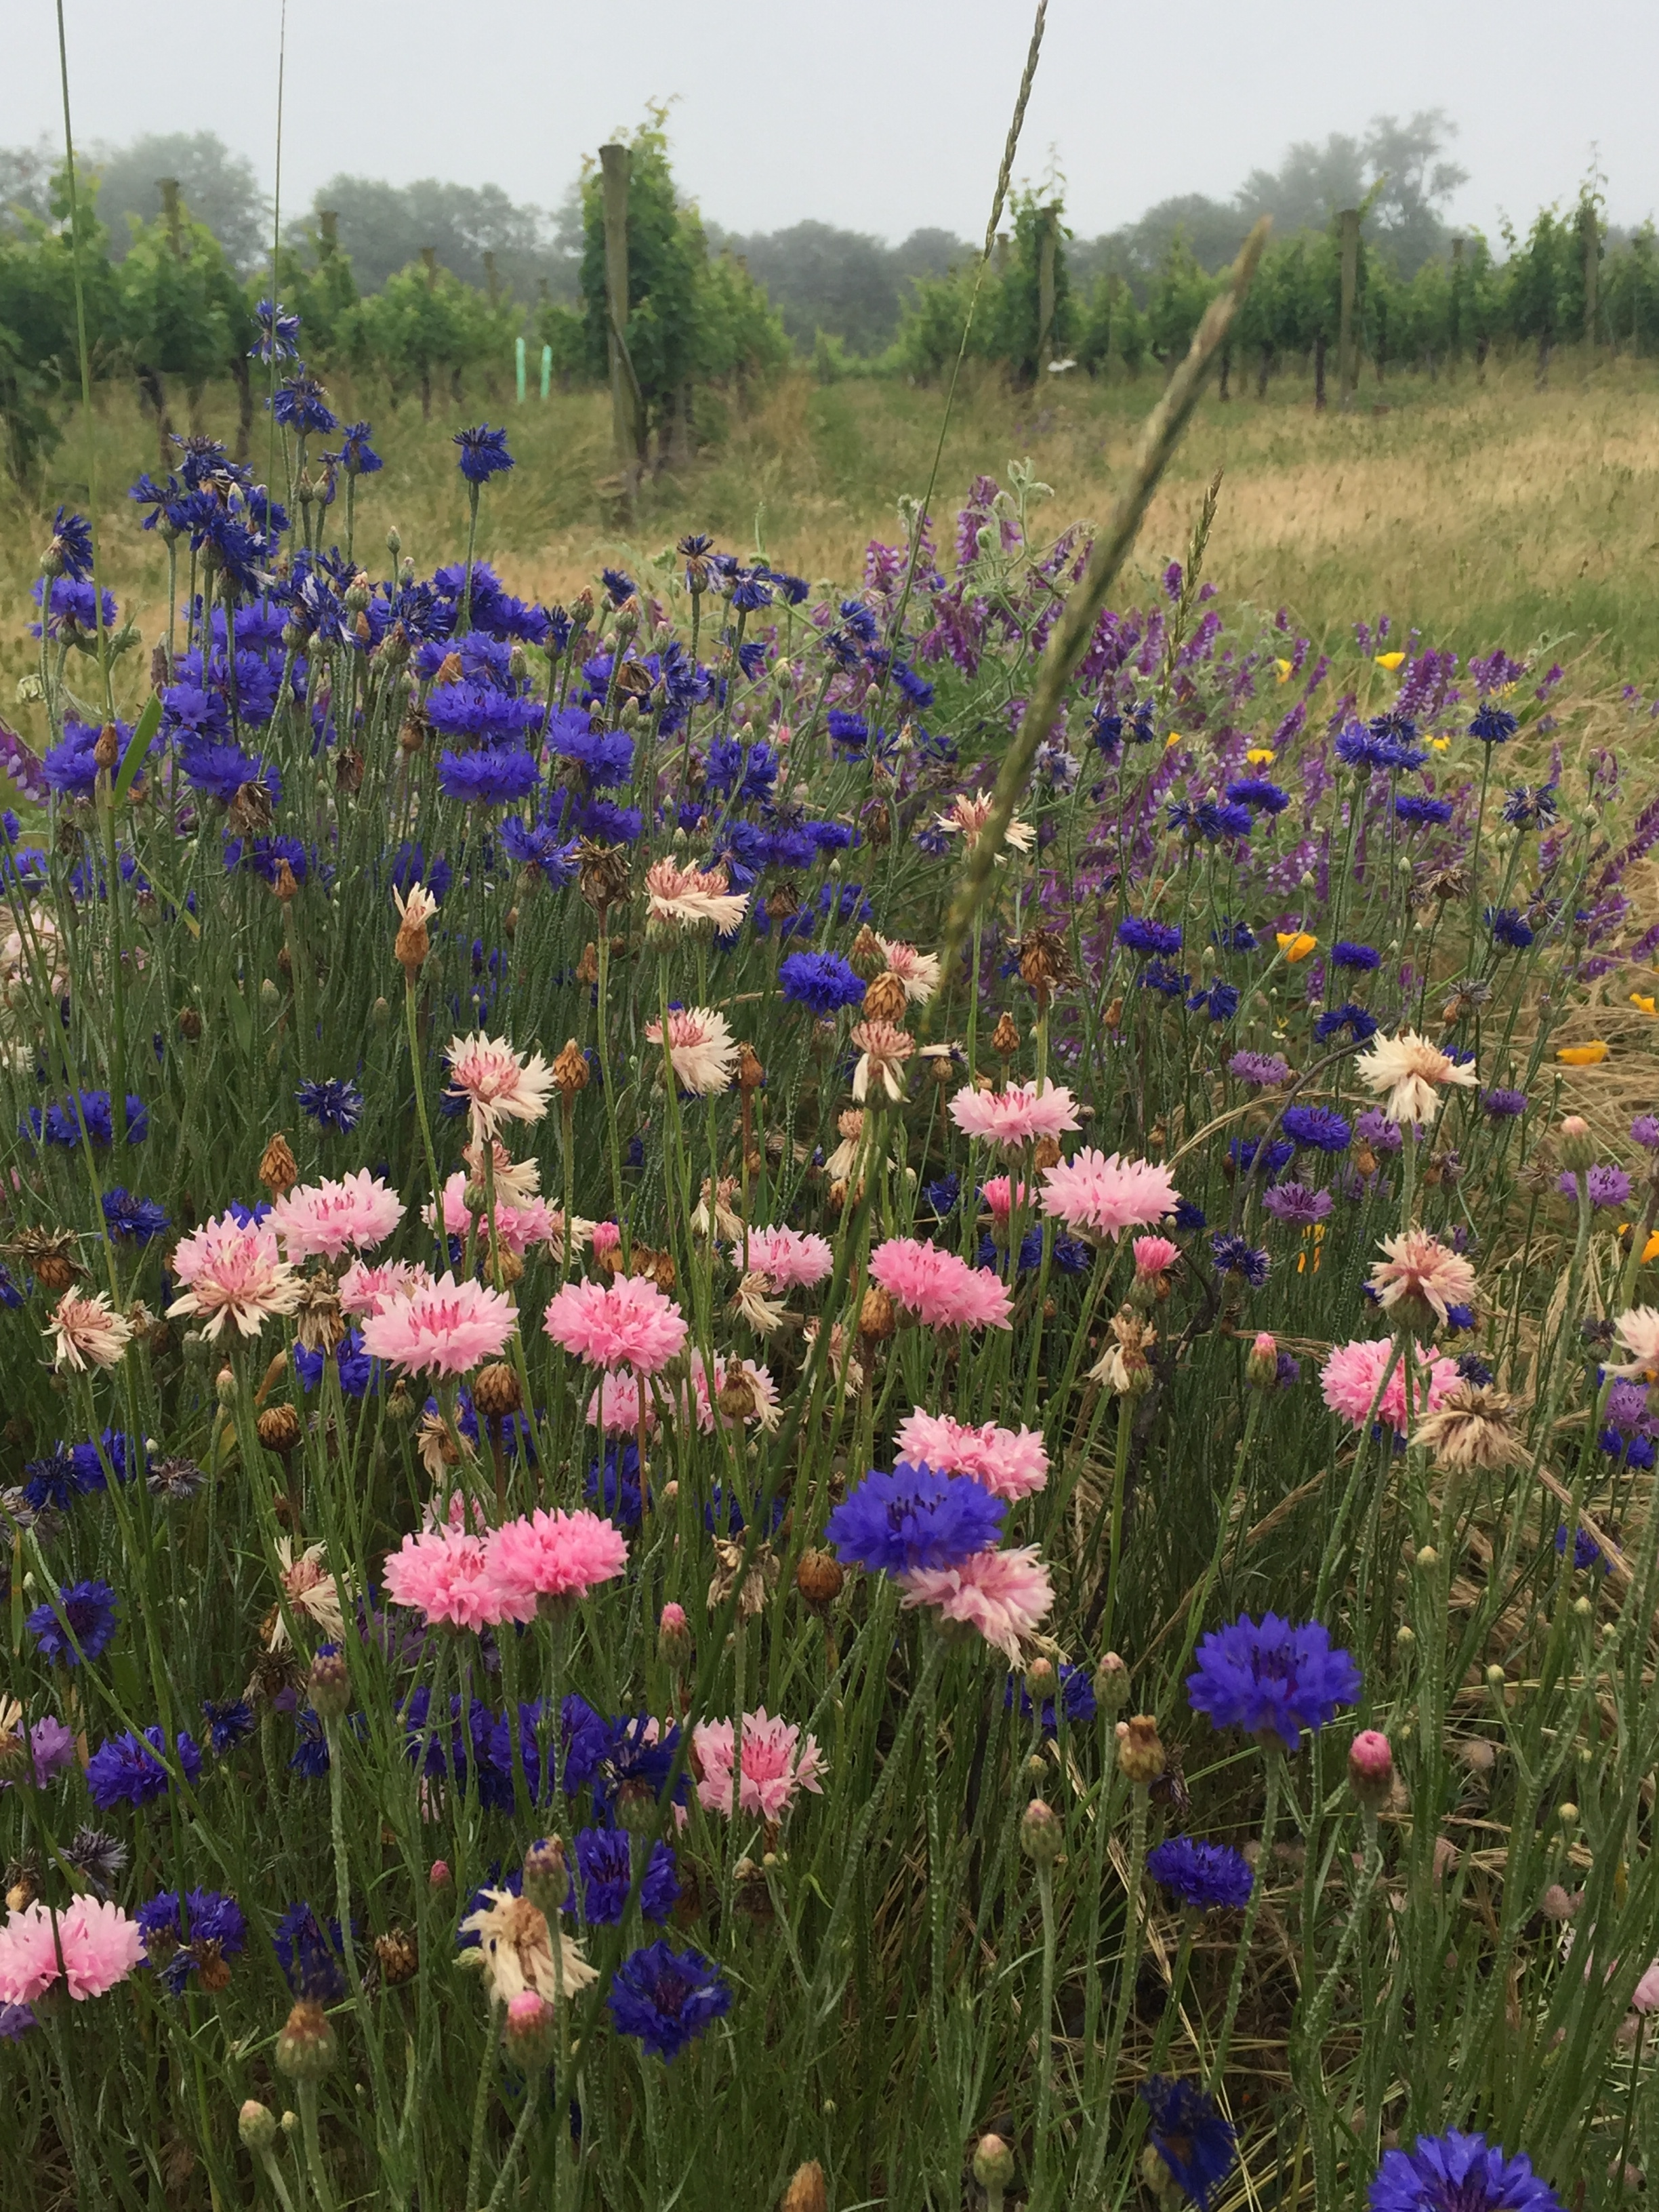 """Pink, blue, purple asters and yellow buttercups. The colors pop in the gray mist. Grape vines climb in neat clipped, fenced rows of """"grape trees"""". I see these things all the time, but today I'm taking their picture. Smile.    Gold finches, turtle doves, red-winged black birds, some blue-all-over bird, gulls, and ospreys flying through the mist. One turtle trying to make it to the other side, though I see many others crushed by careless cars and trucks. Makes me wince every time.    Others riders, exactly five, are out on their bikes, also. Bike lights glow brilliantly white on the front, and blinking reds on the back. Will cars really see me? I can barely see the cars with their brights on."""